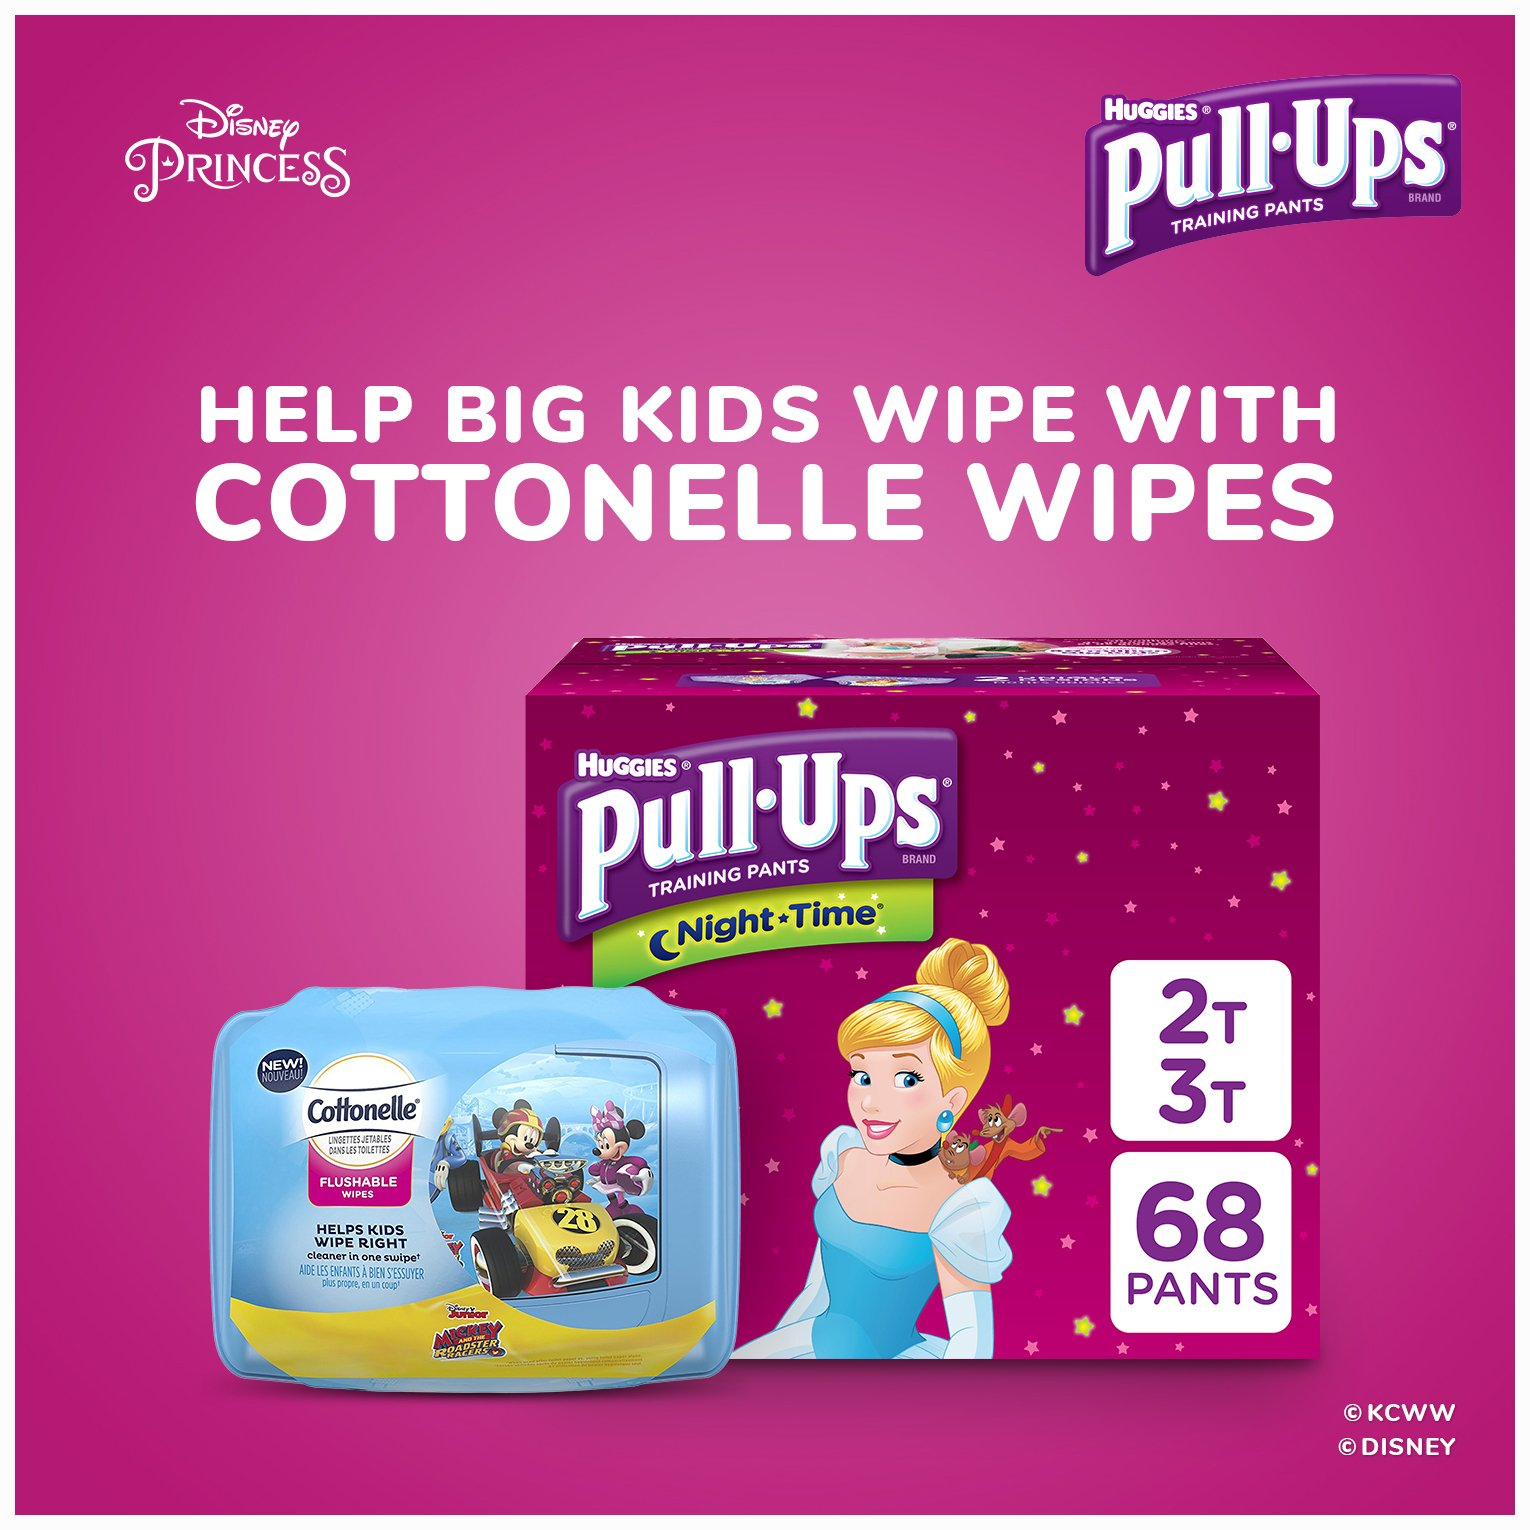 Pull-Ups Night-Time Potty Training Pants for Girls, 2T-3T (18-34 lb.), 23 Ct.- Pack of 4 (Packaging May Vary) by Pull-Ups (Image #7)